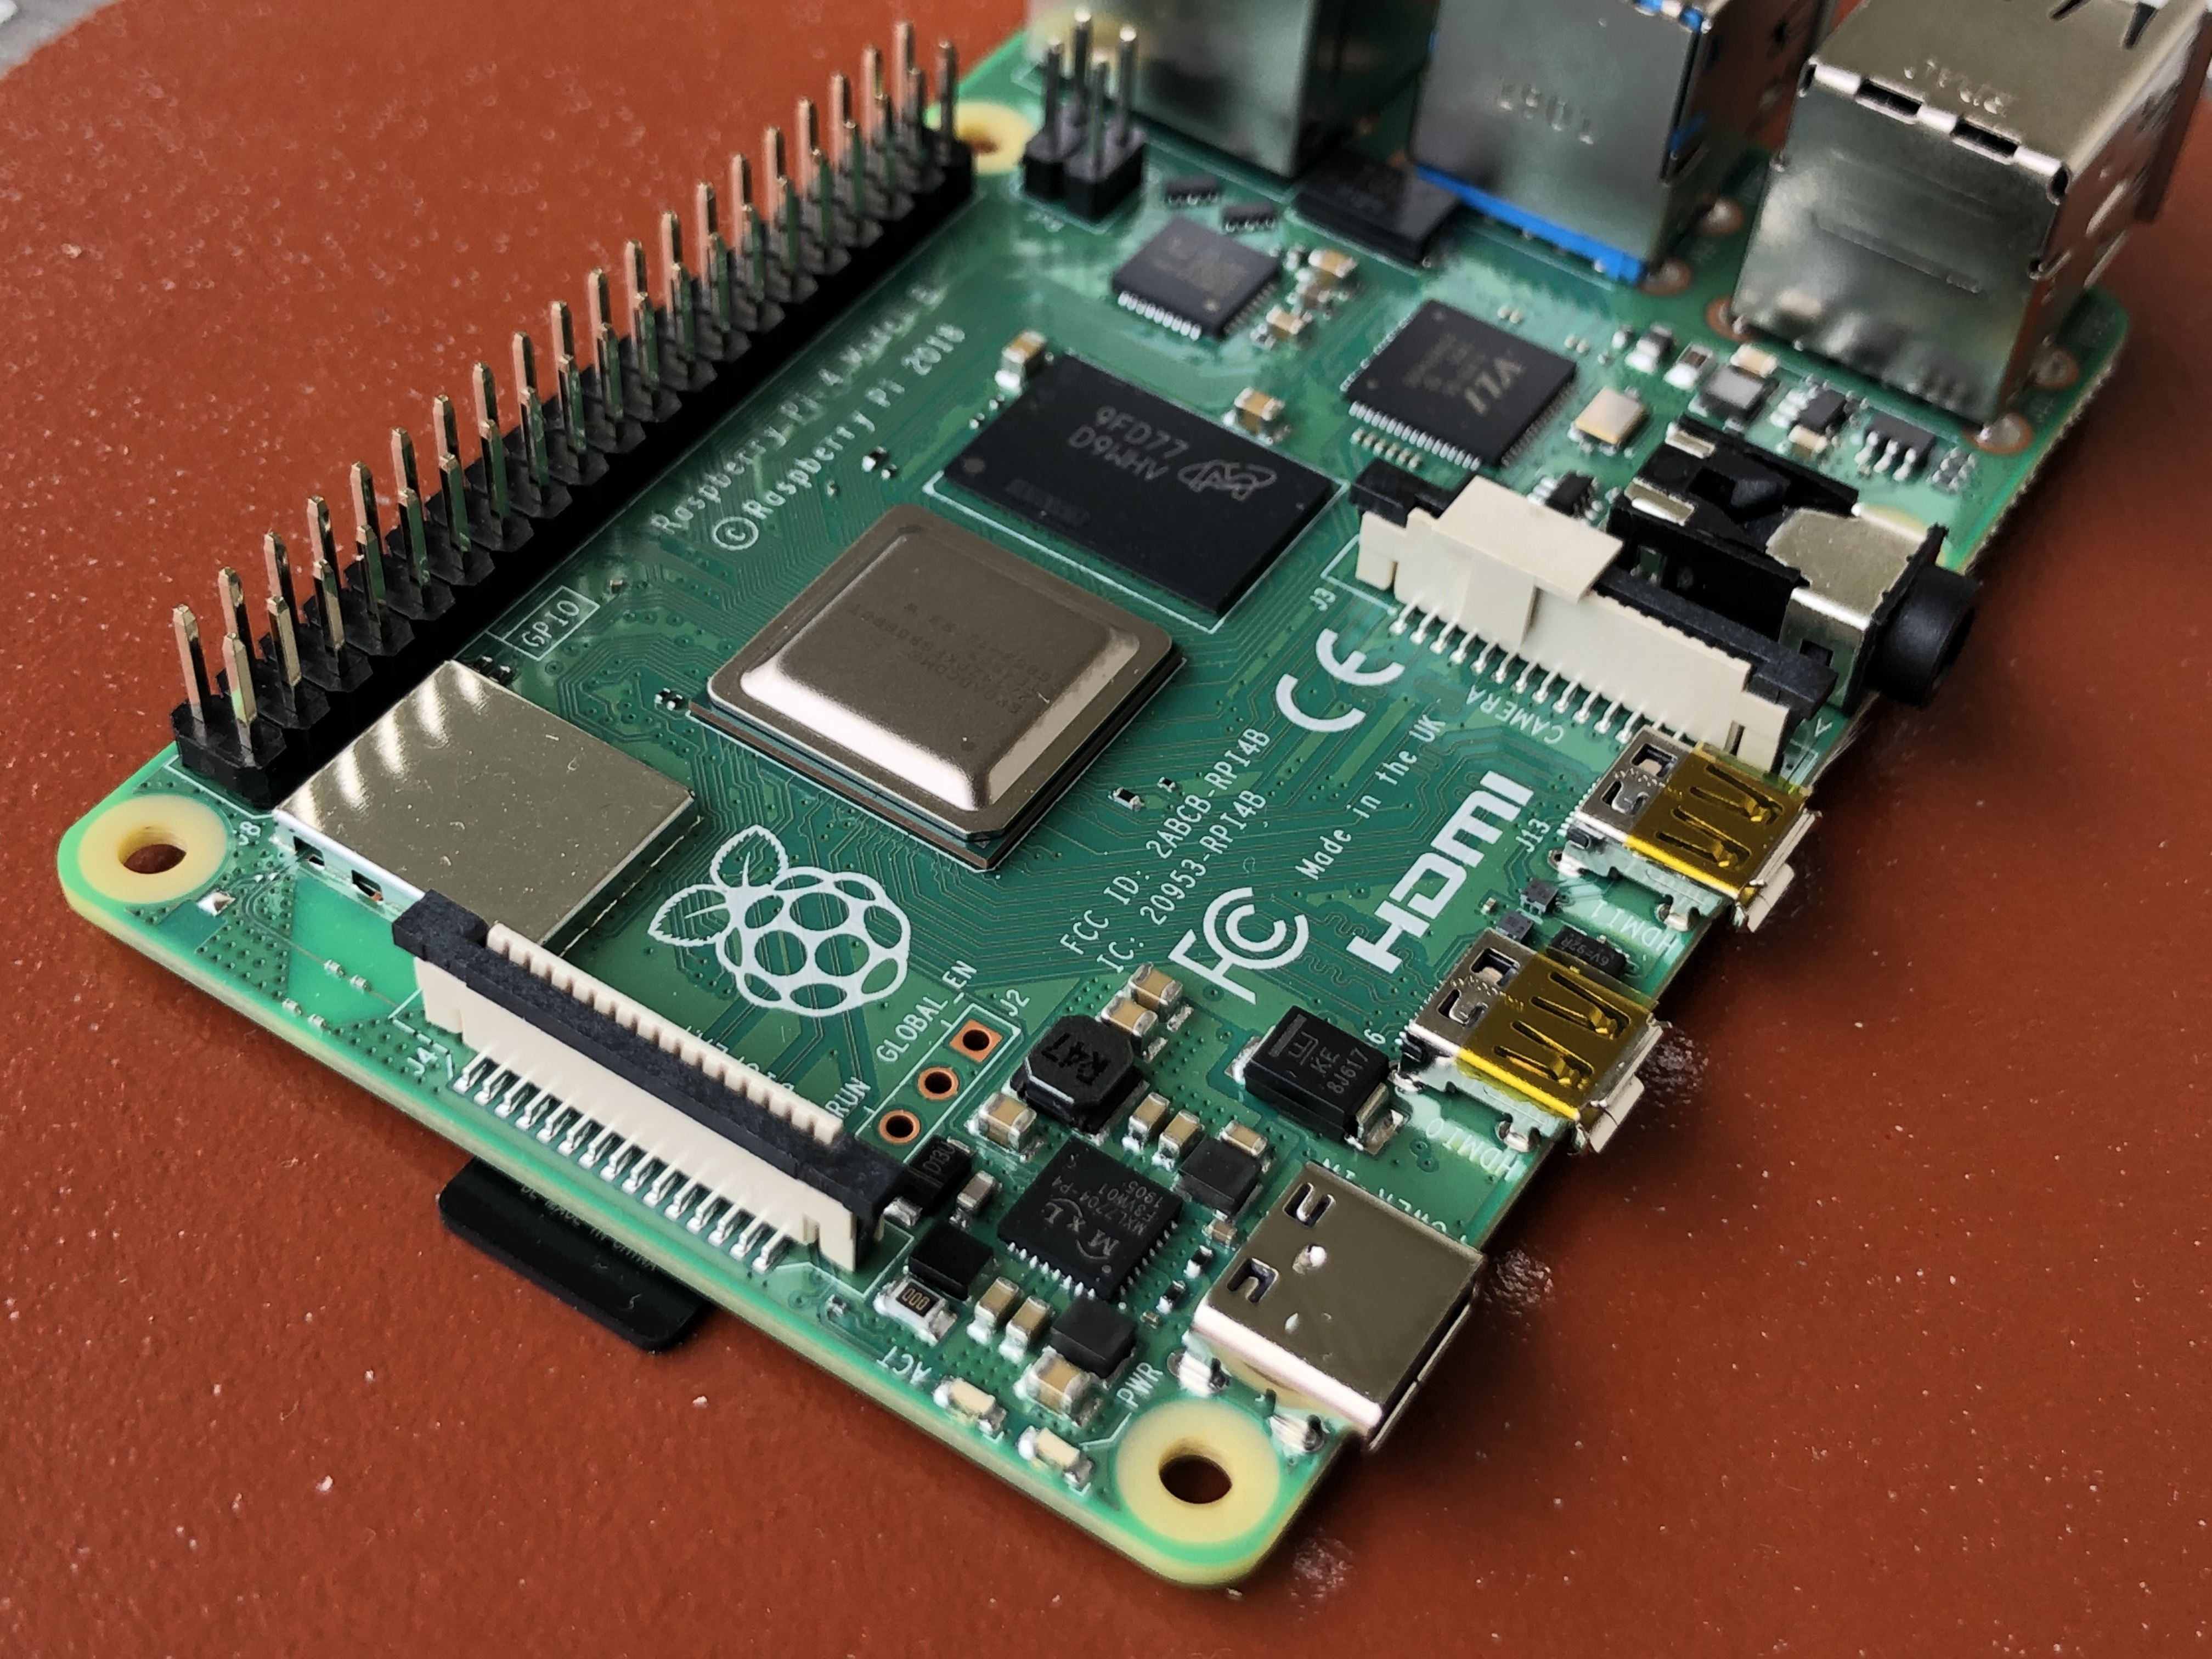 Daily Crunch: Details on the new Raspberry Pi | TechCrunch